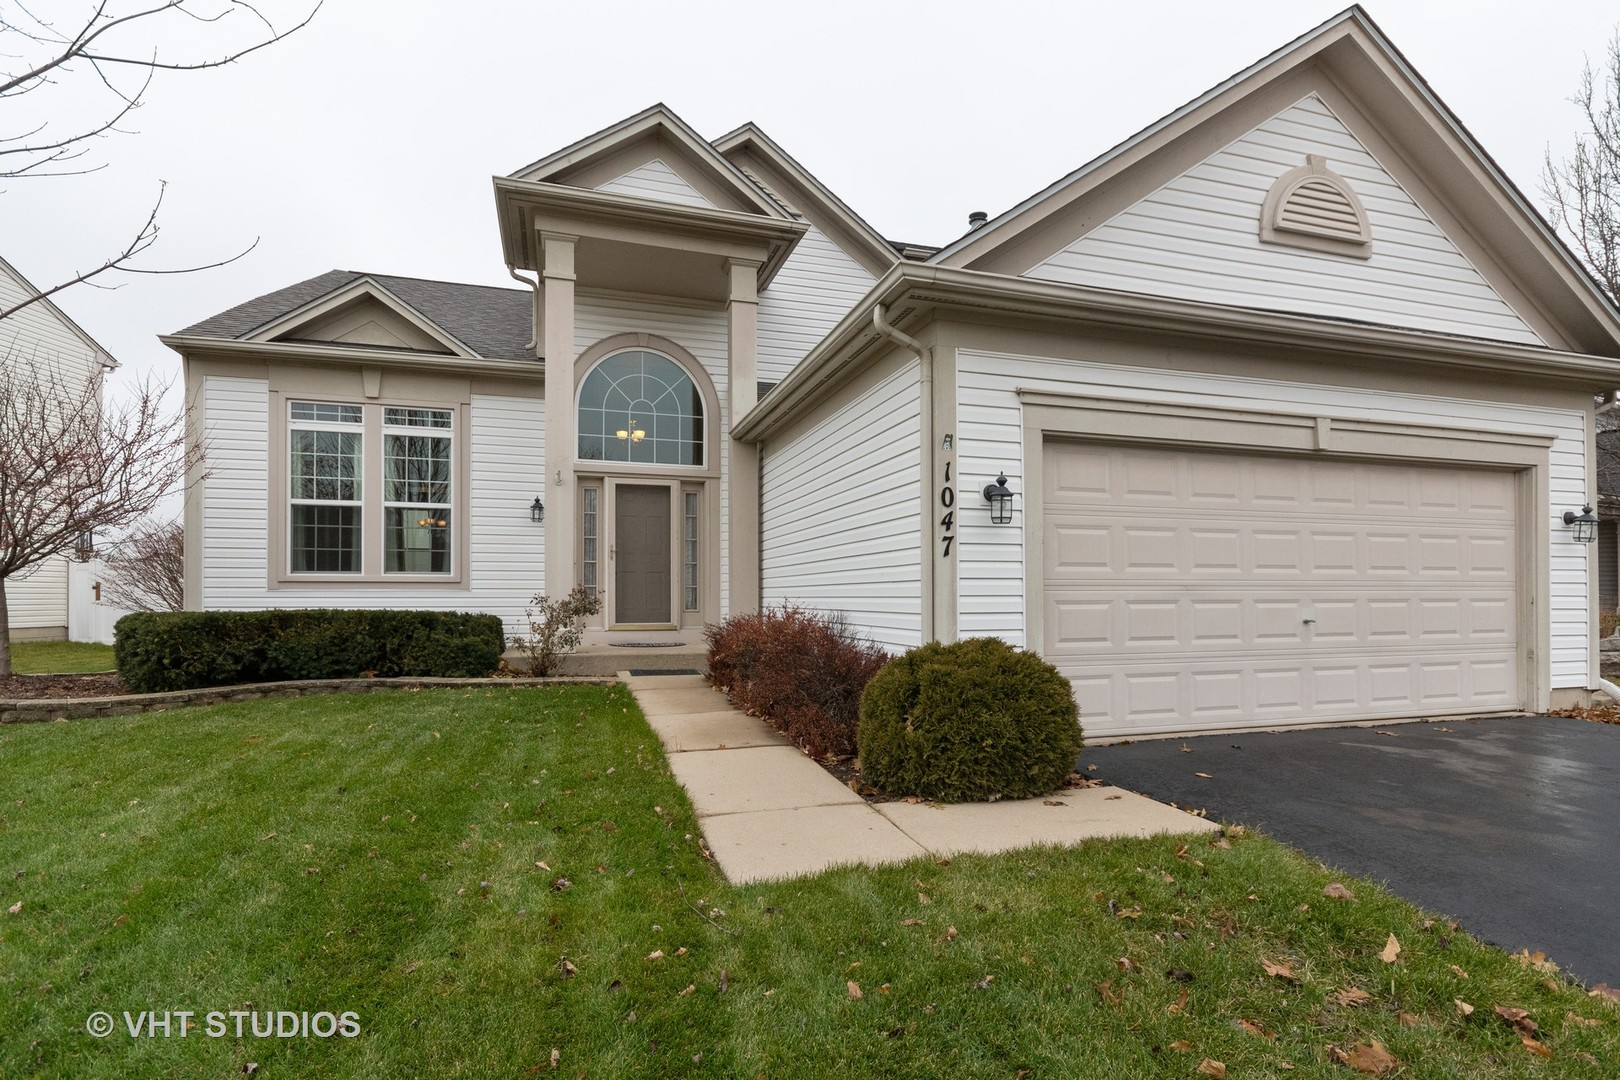 Photo for 1047 Spinnaker Street, Elgin, IL 60123 (MLS # 10582939)